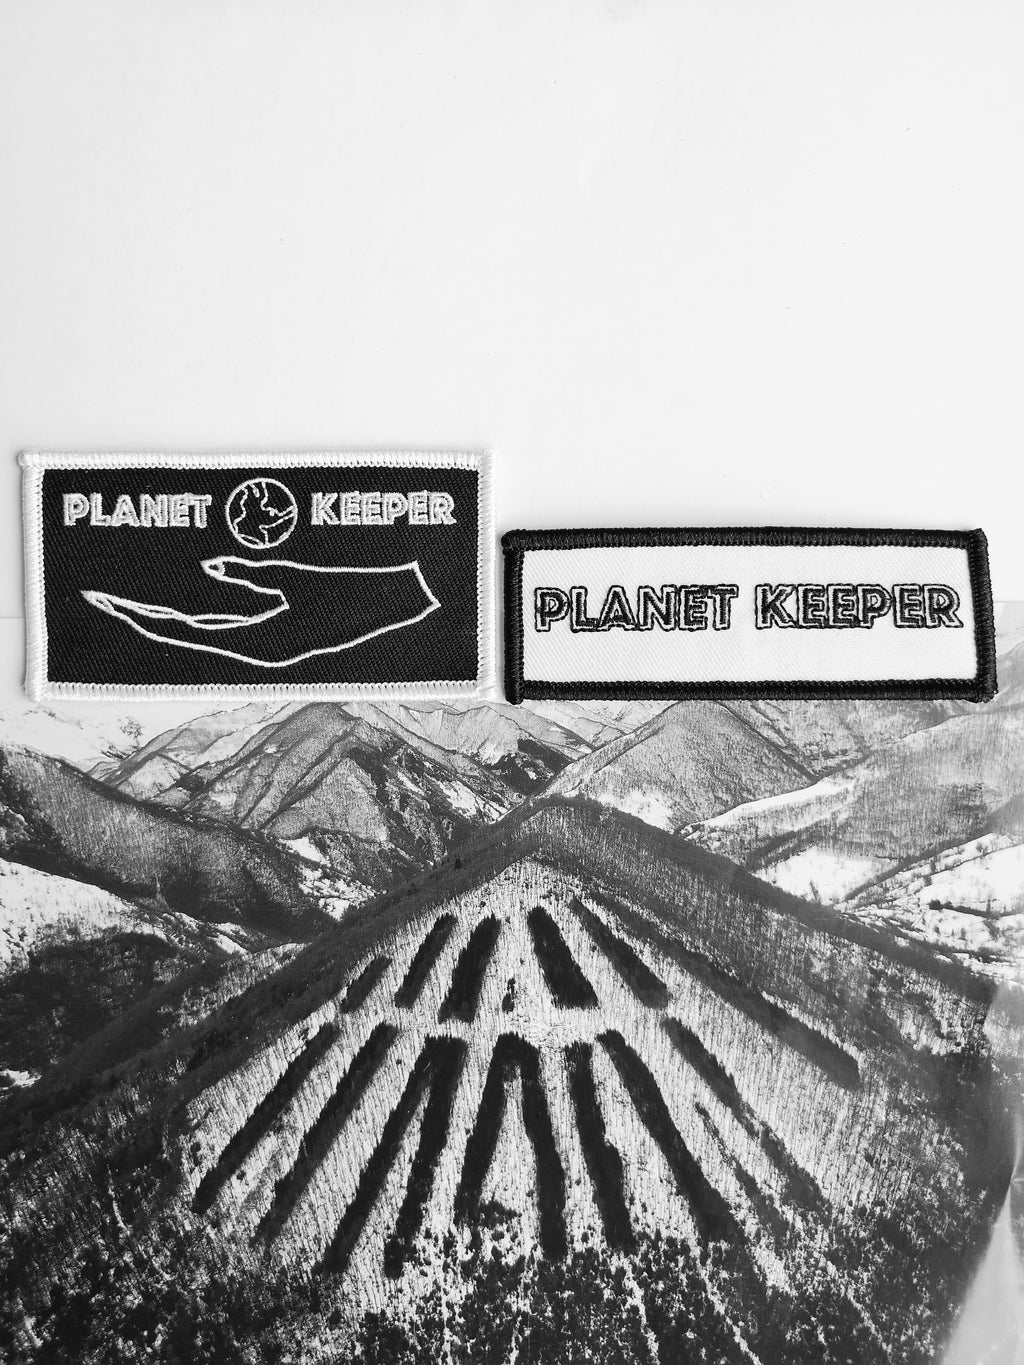 Planet Keeper Patch Package